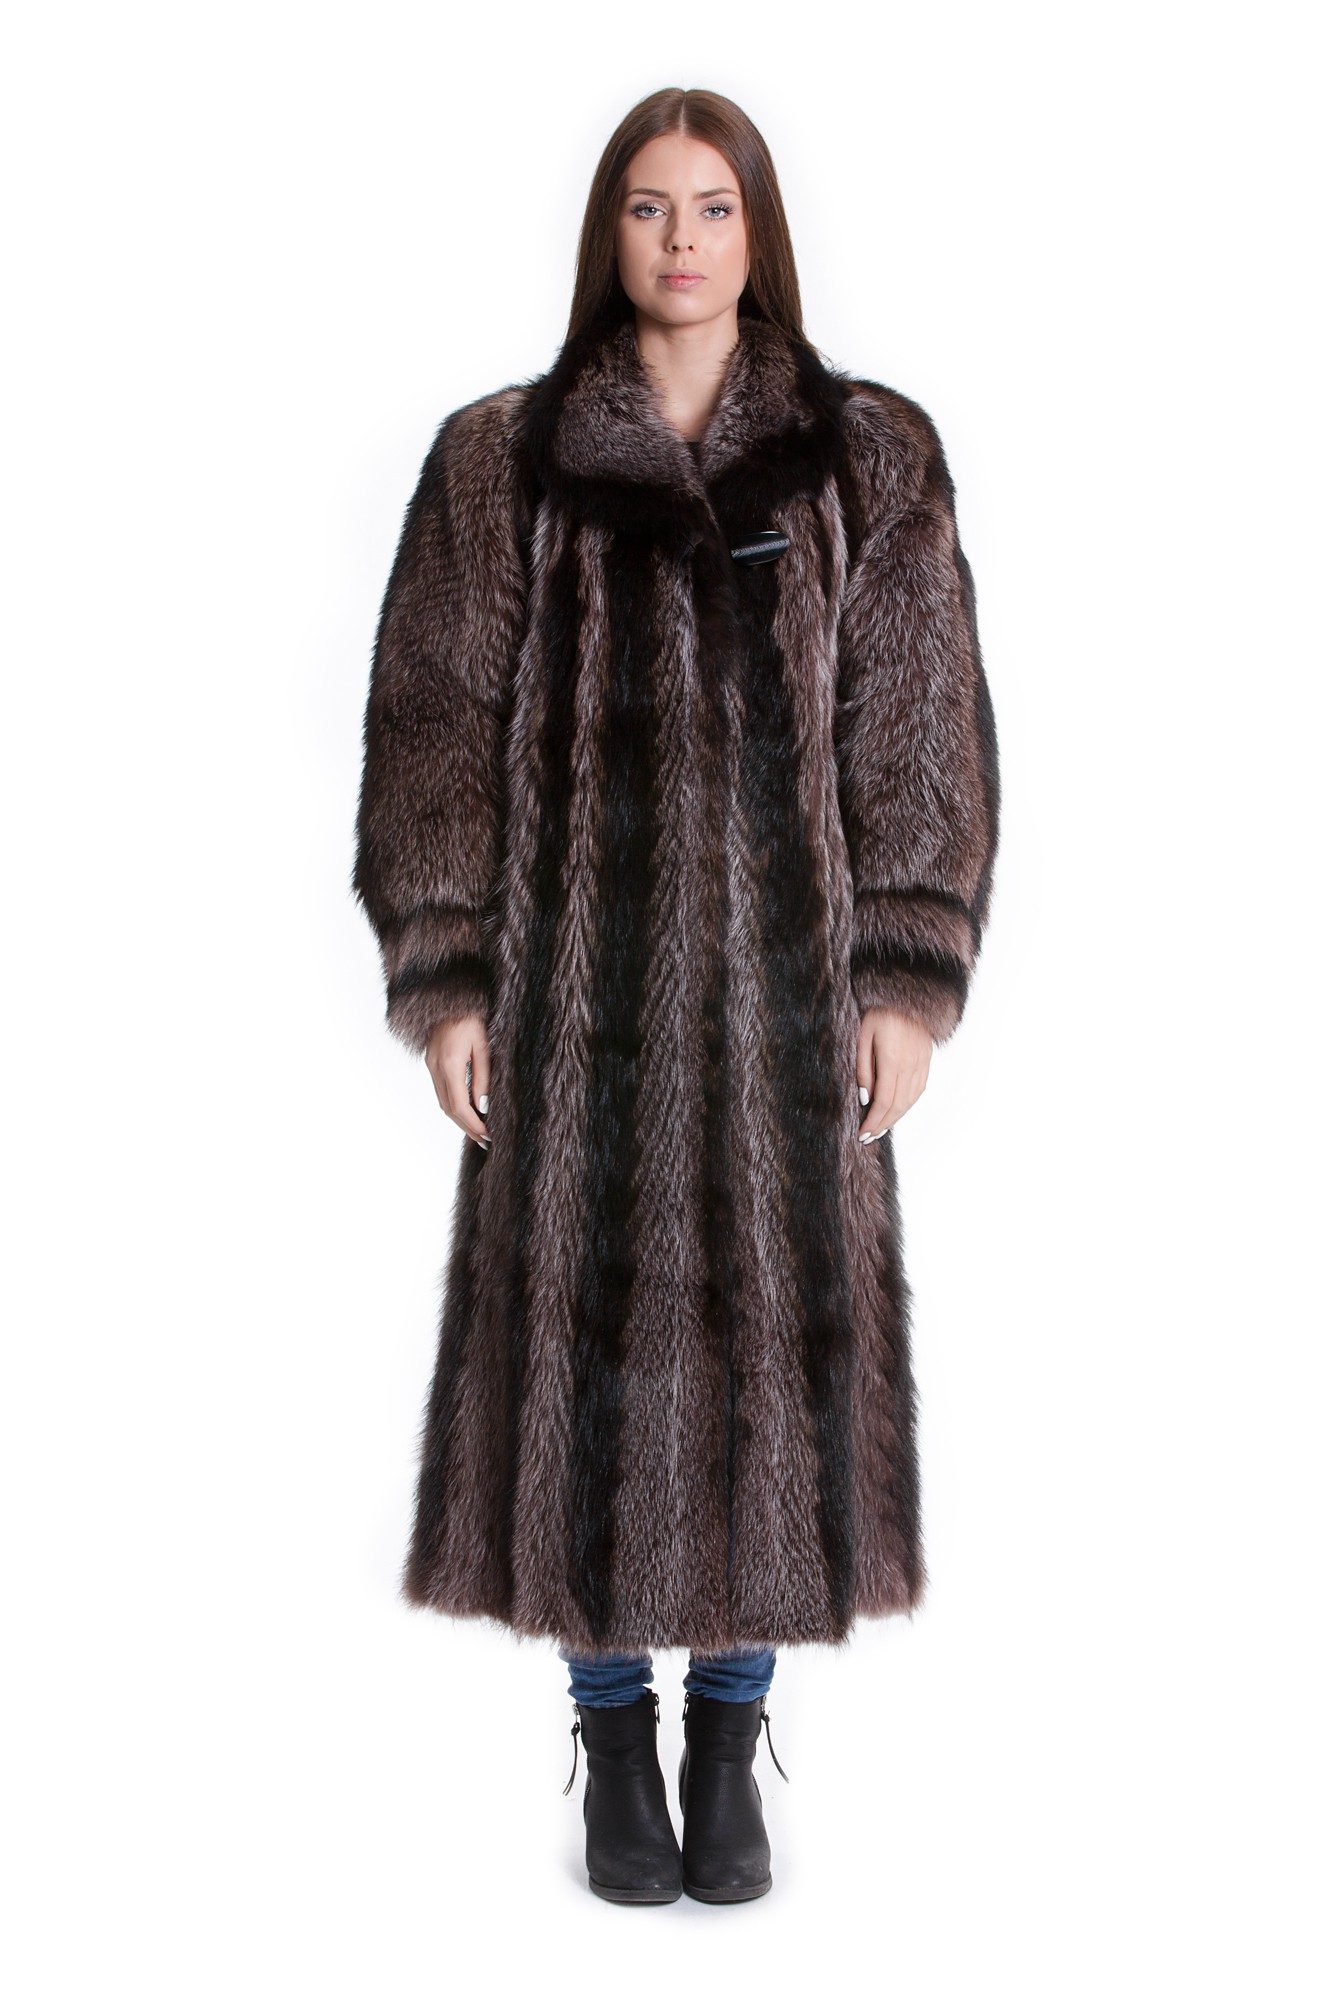 Hooded Coat for Women Clearance Corriee Ladies Warm Faux Fur Outerwear Jacket Winter Sexy V Neck Solid Cardigan Tops by Corriee Sweater $ - $ $ 18 38 - $ 20